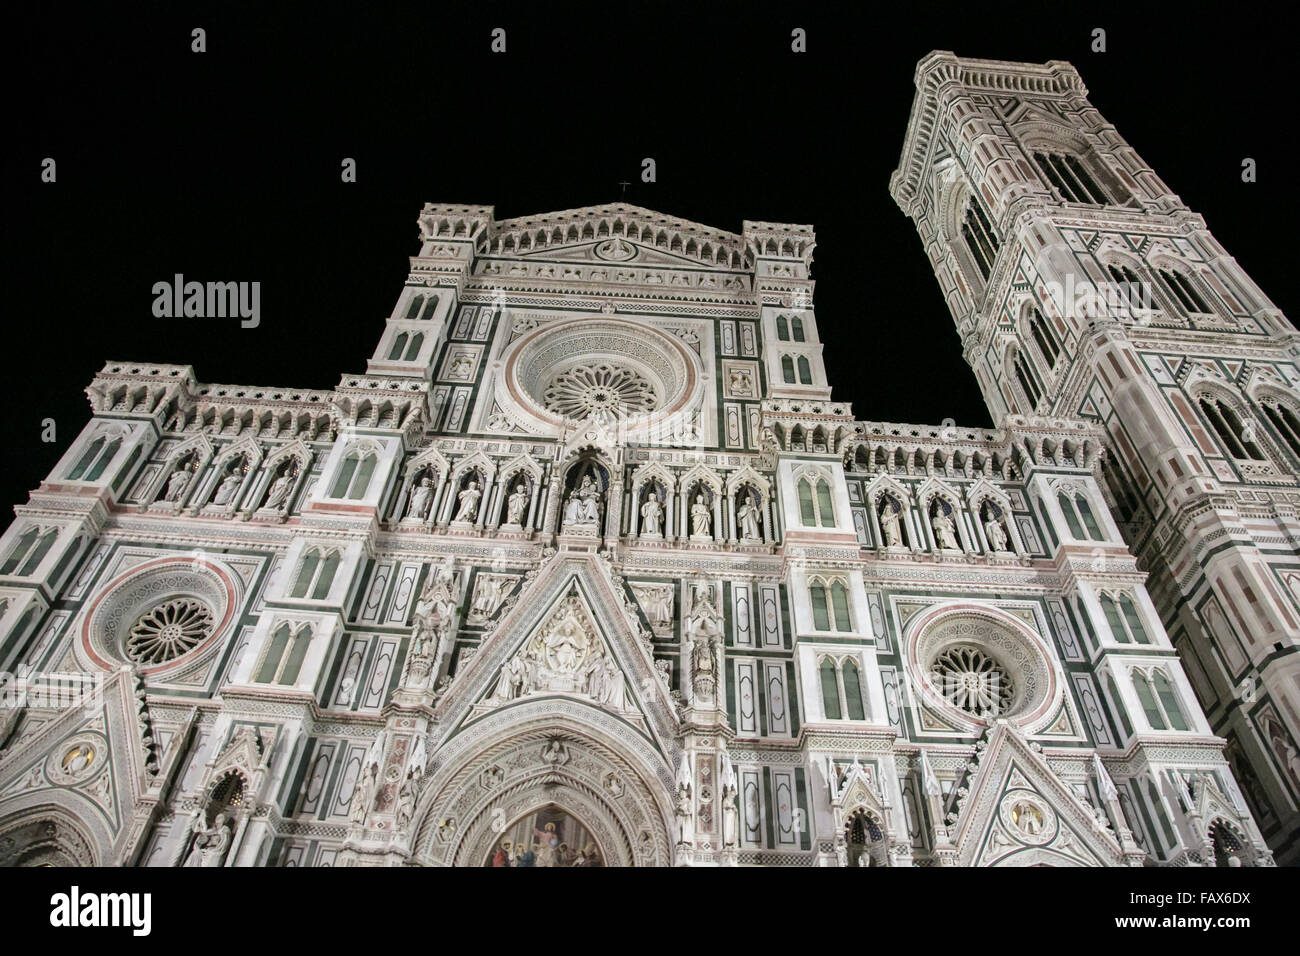 The imposing Florence cathedral at night. - Stock Image